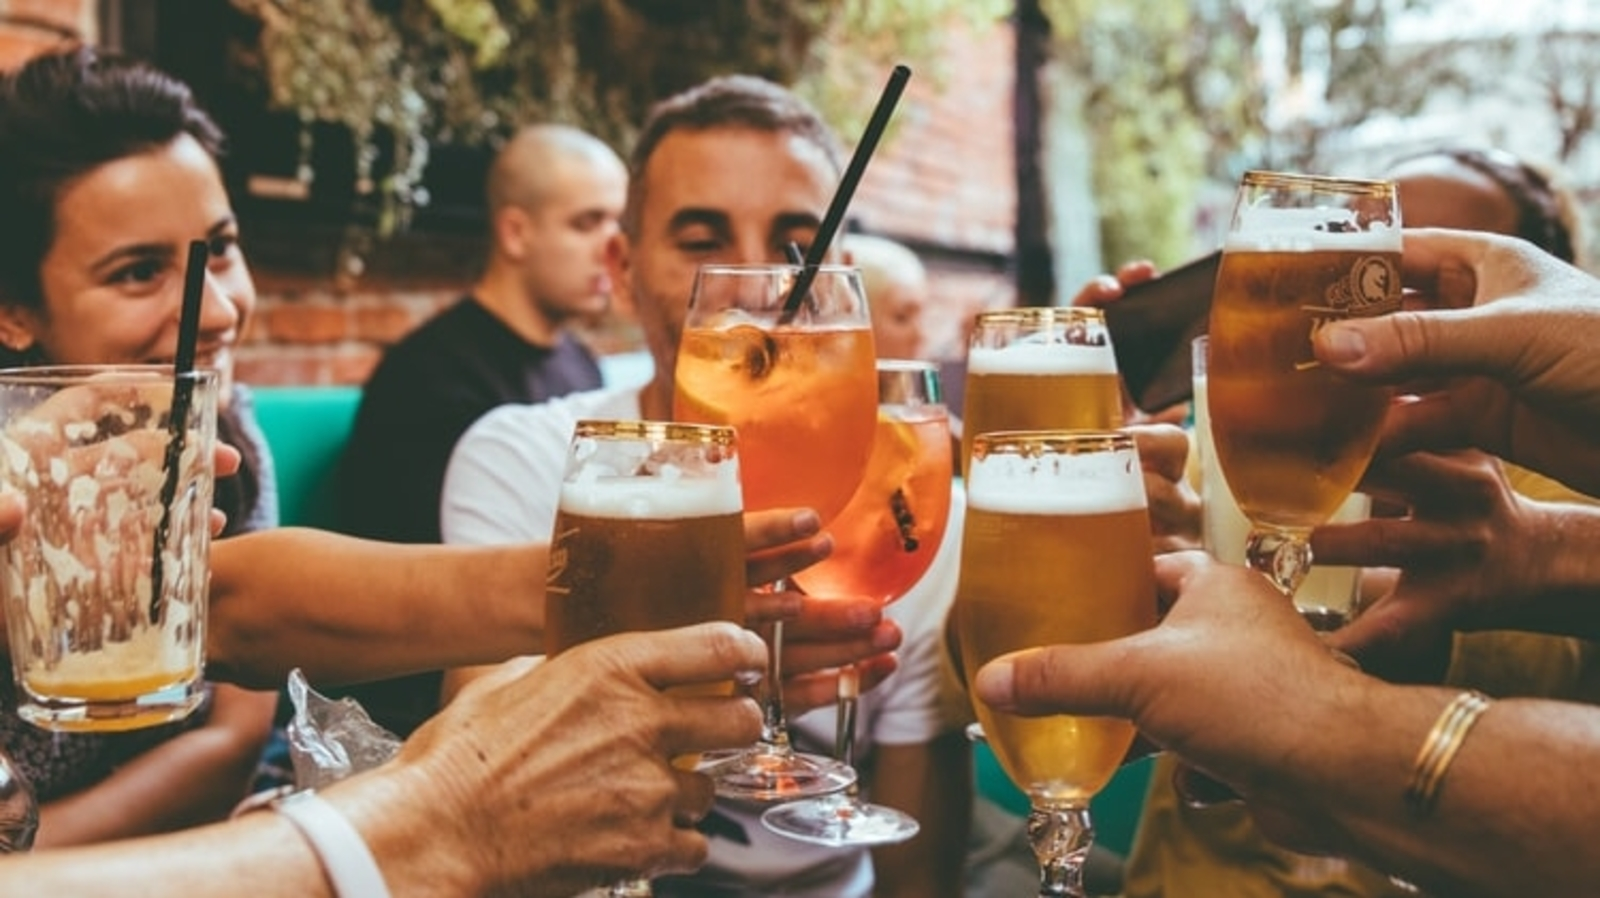 Romantic relationships linked to alcohol use among college students. Here's how